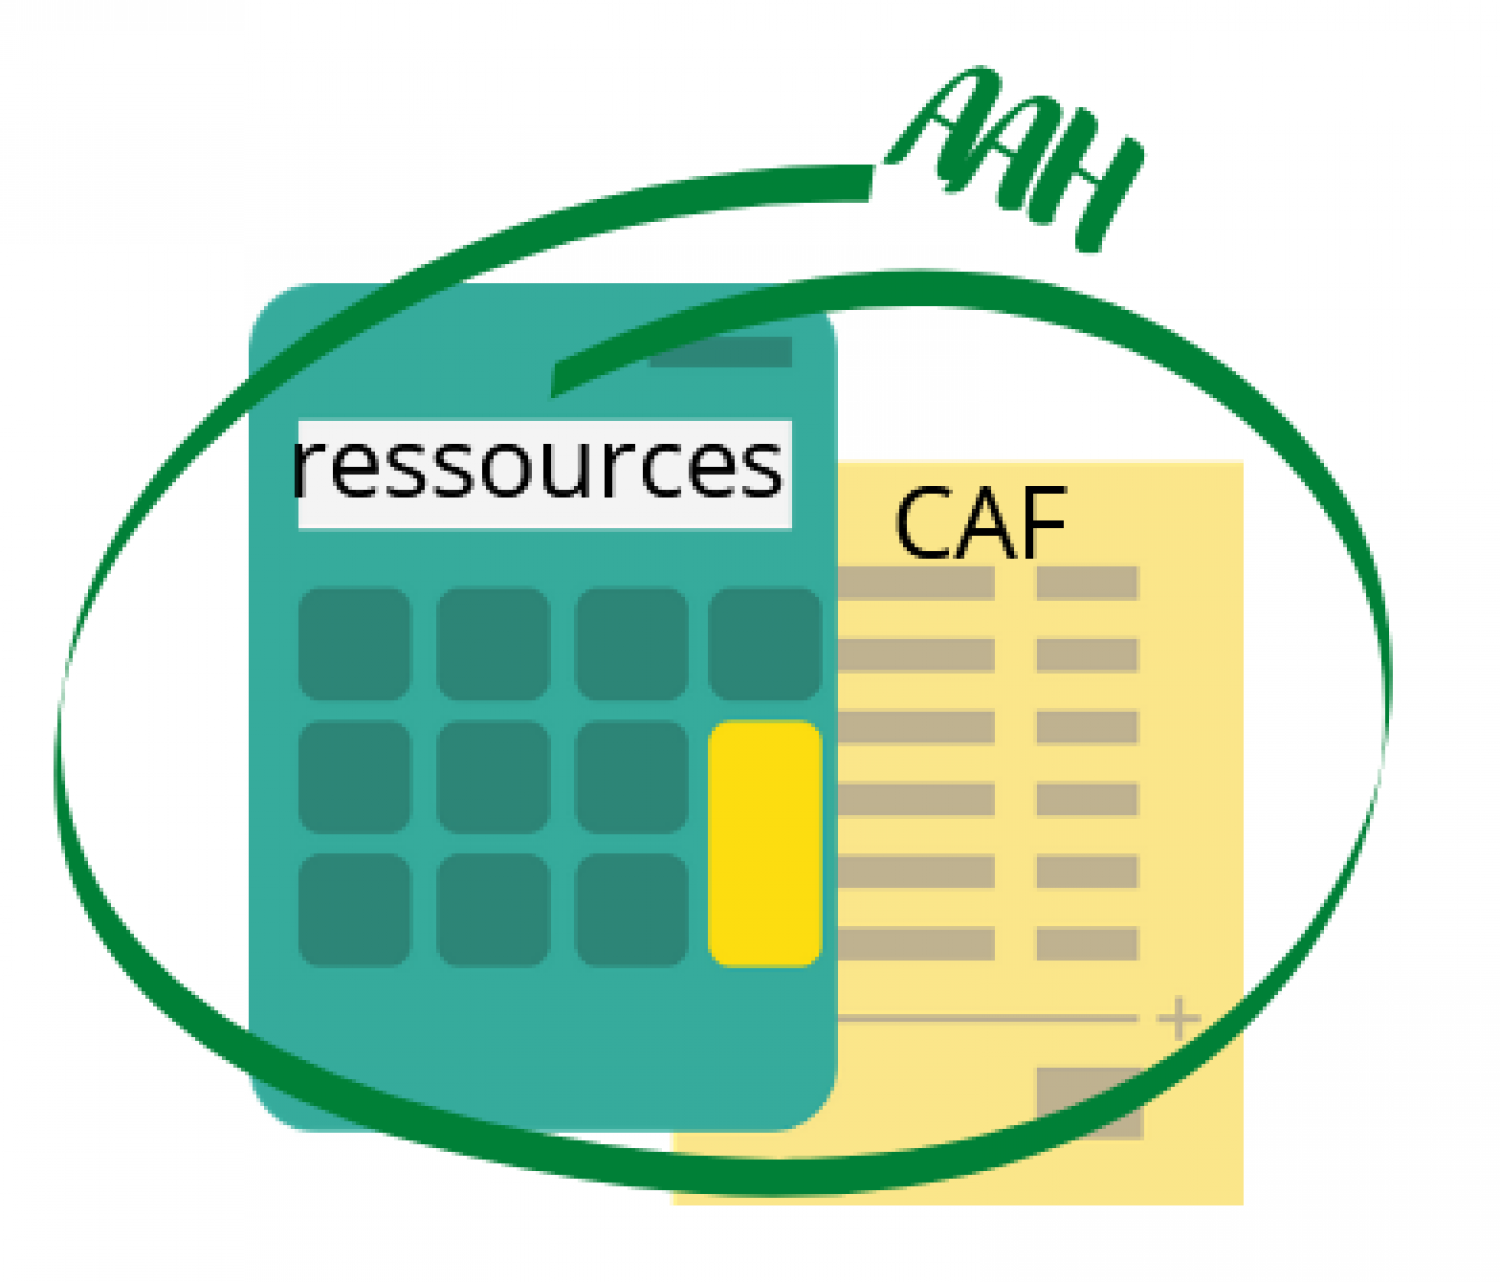 20201221125707-declaration-ressources-aah-caf.png